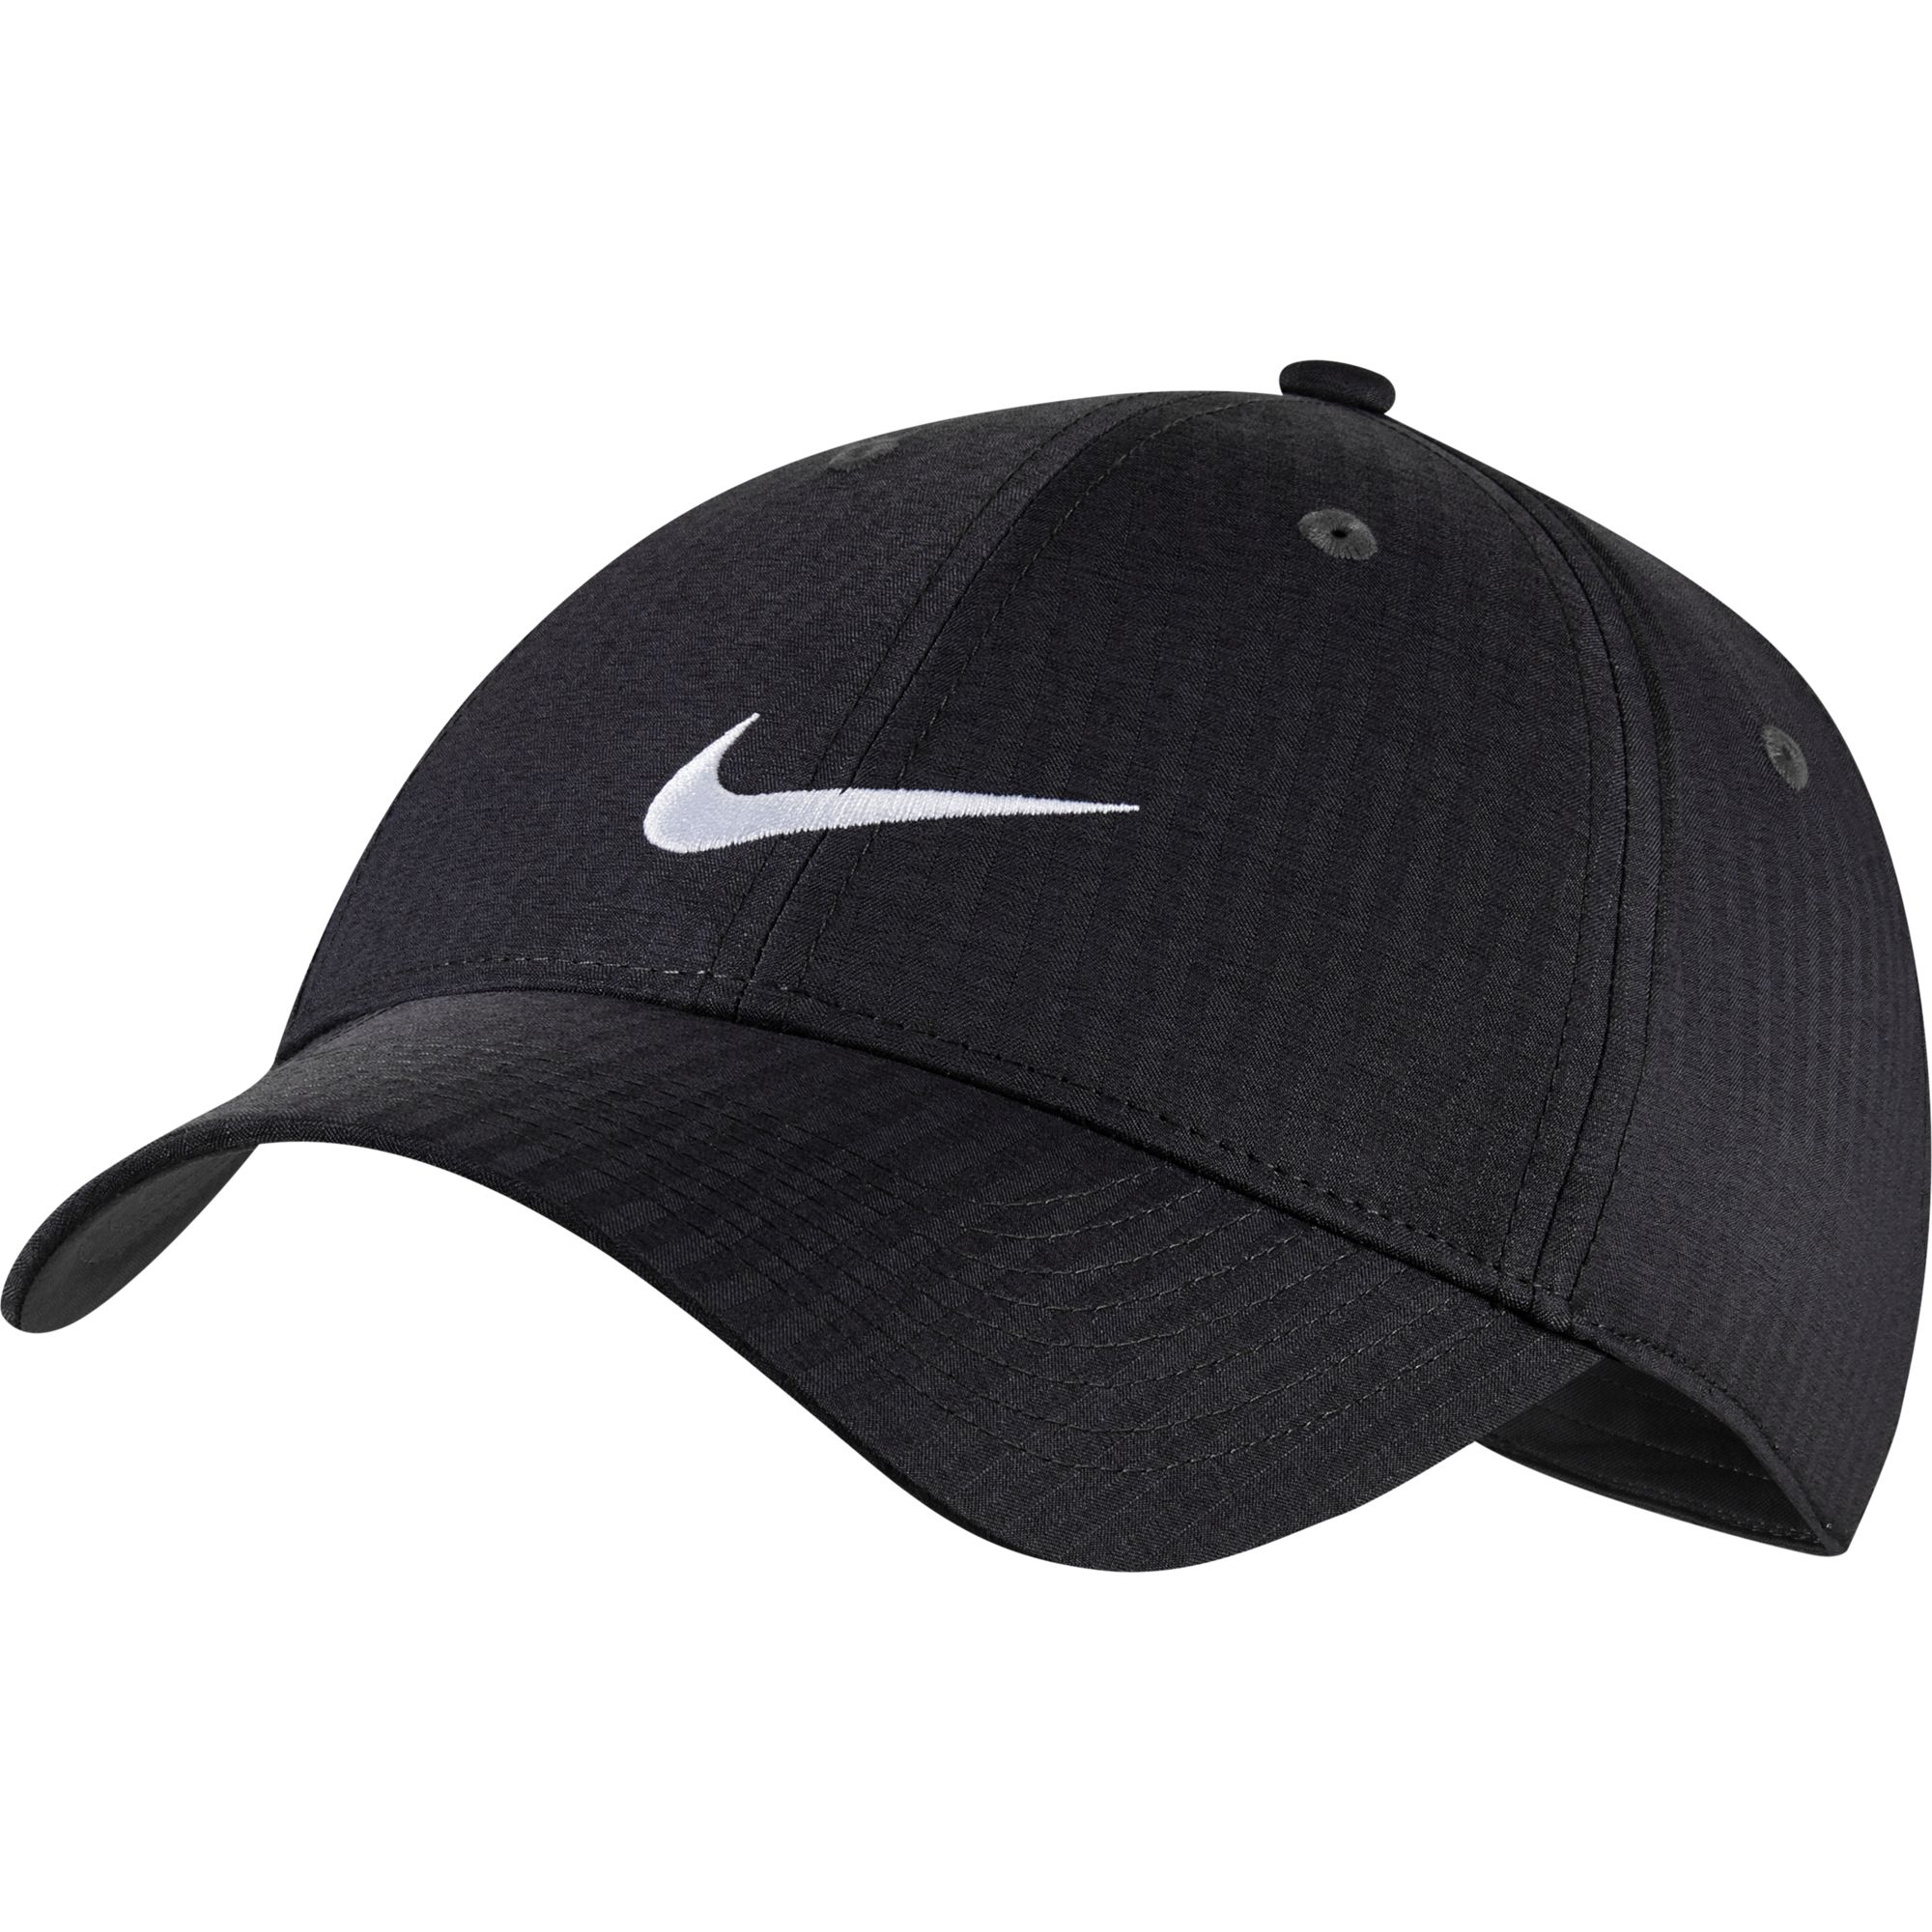 Men's Legacy91 Golf Hat, Black, large